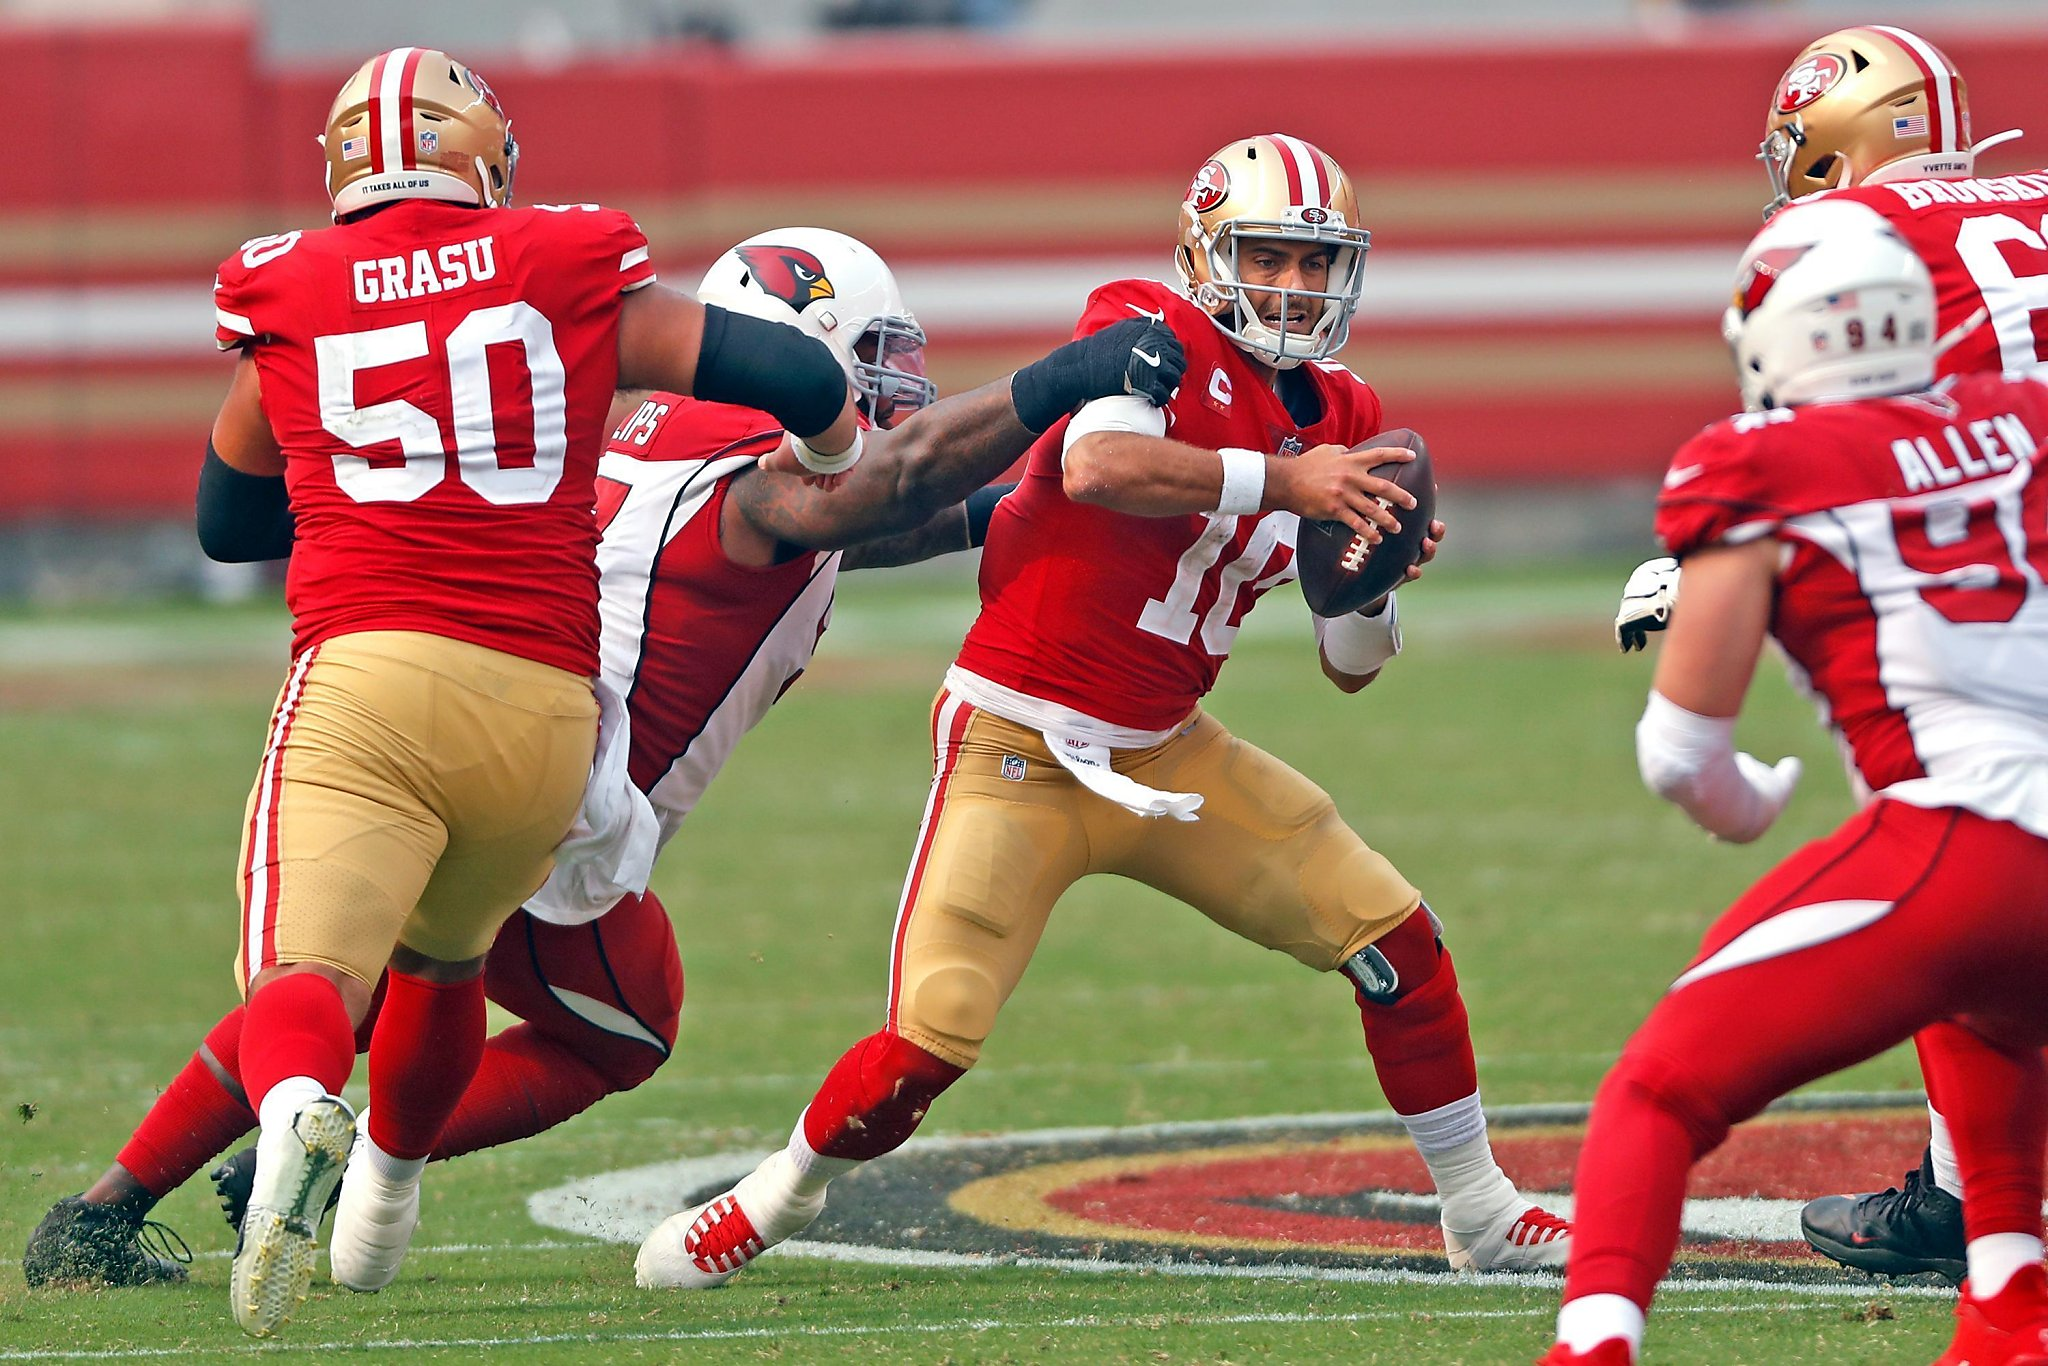 Where can 49ers' JImmy Garoppolo improve? 'Being decisive, getting the ball out on time'